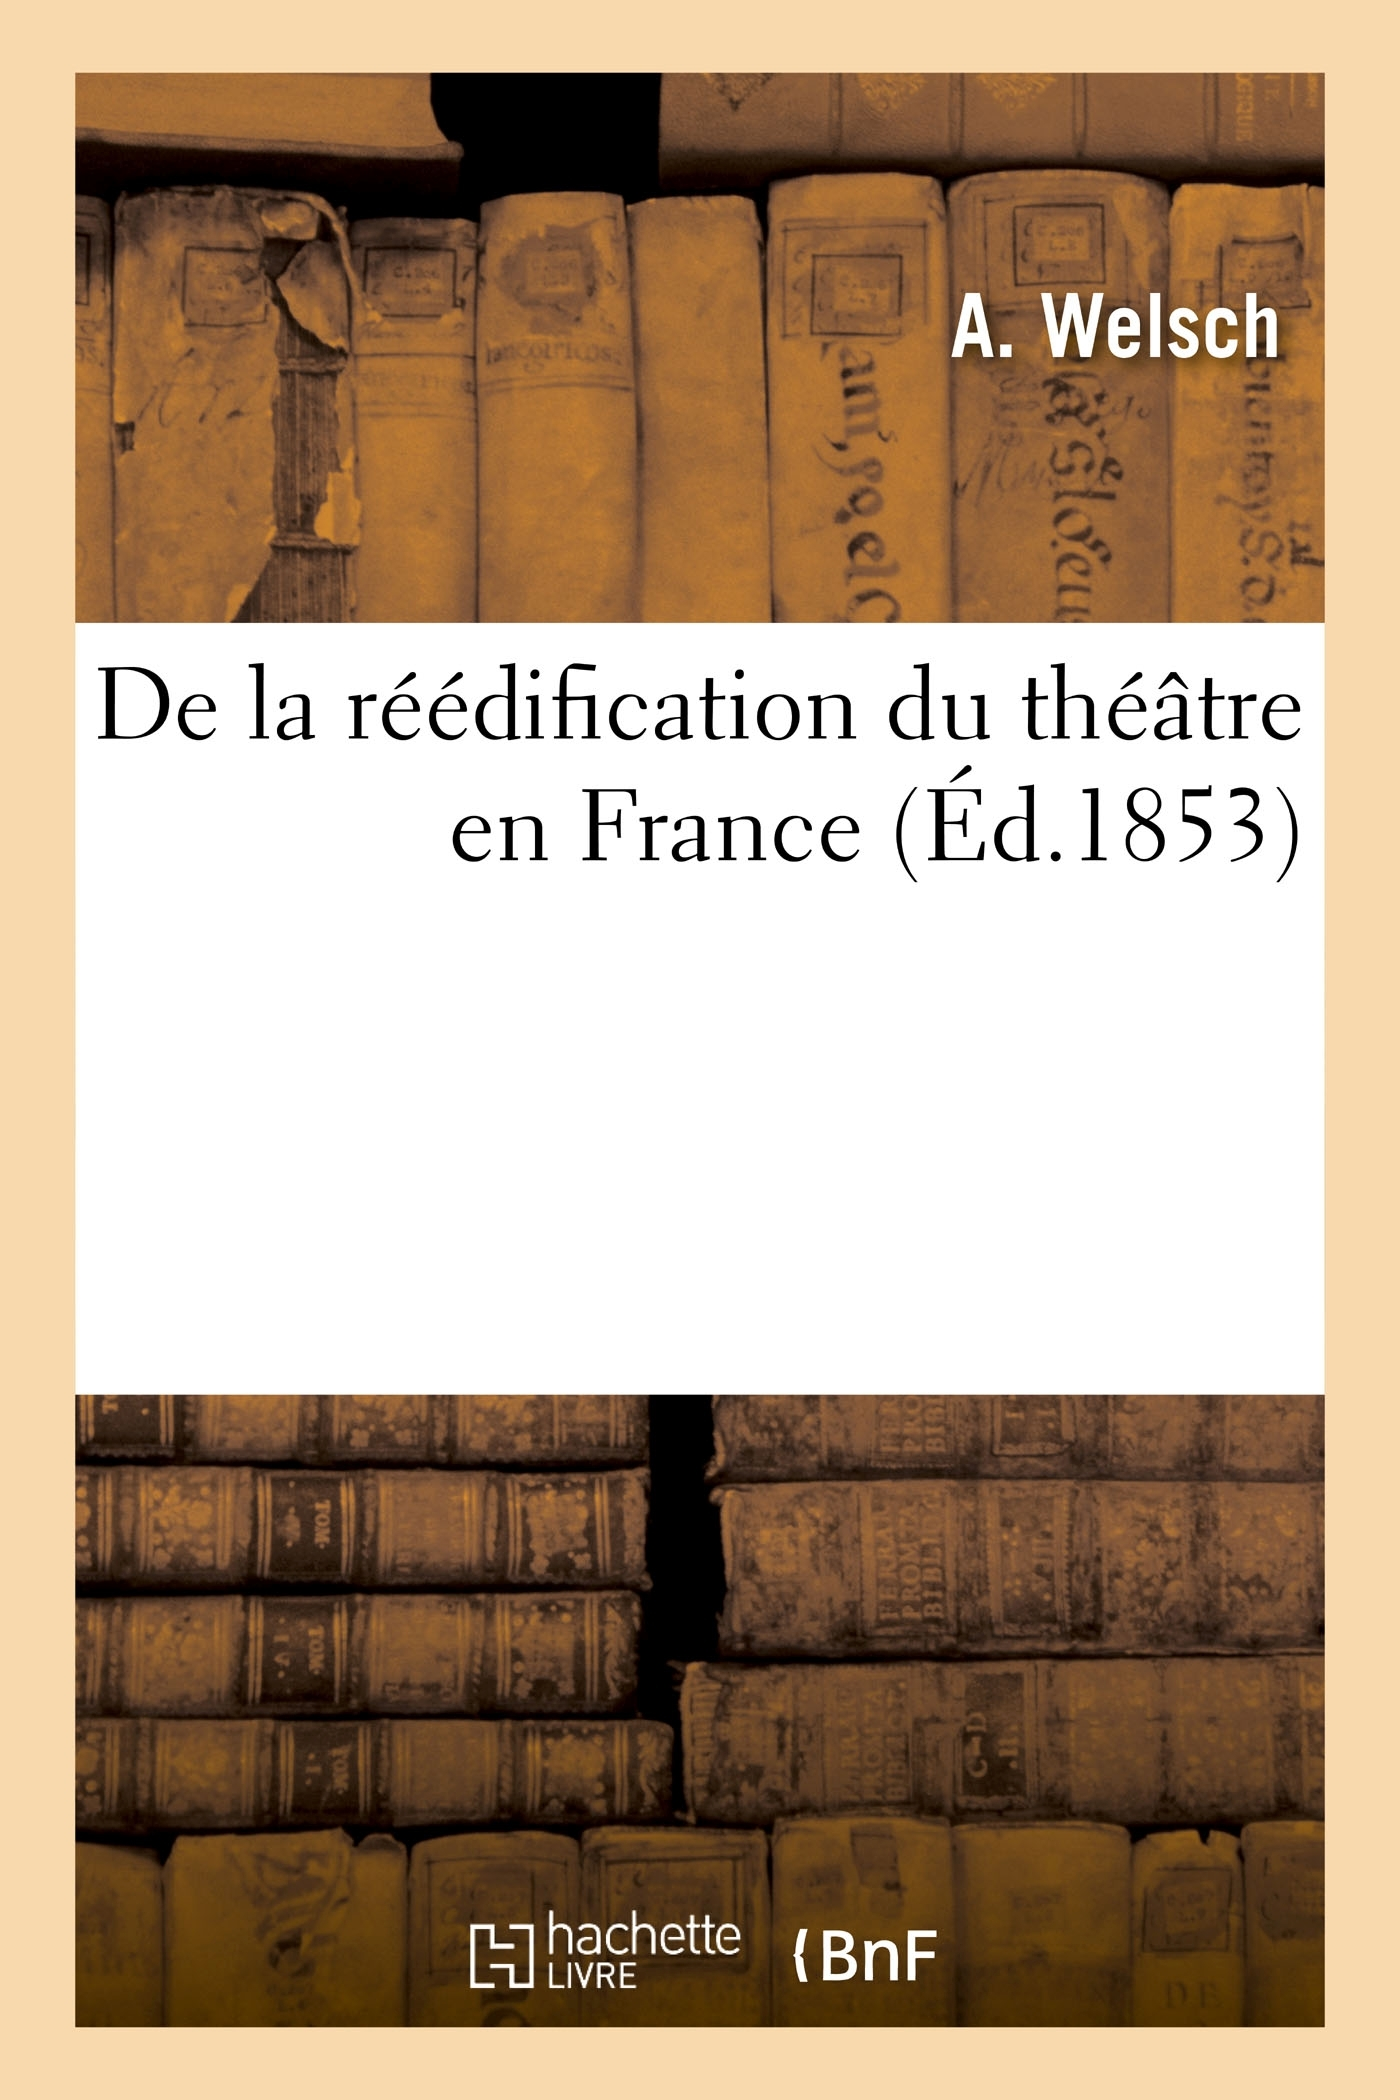 DE LA REEDIFICATION DU THEATRE EN FRANCE